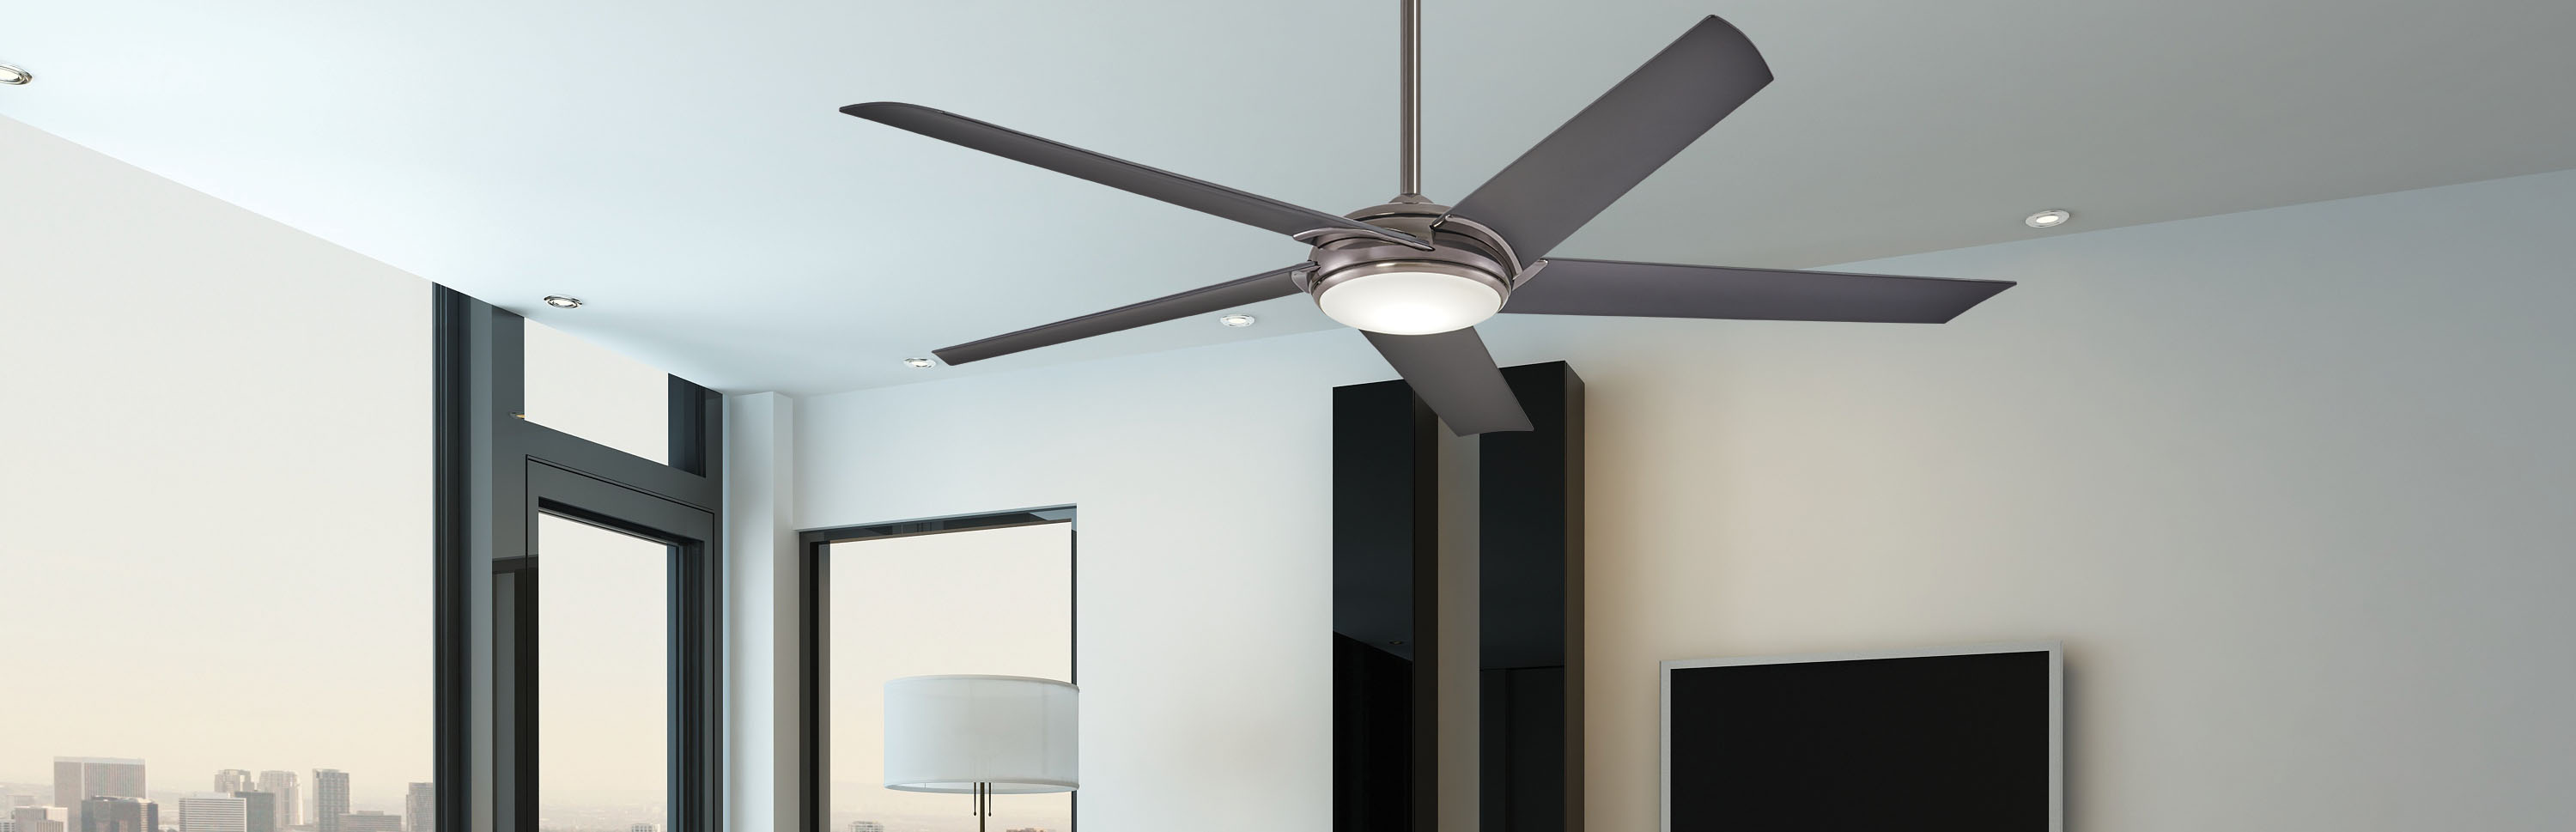 Wiring 2 Ceiling Fans In Series